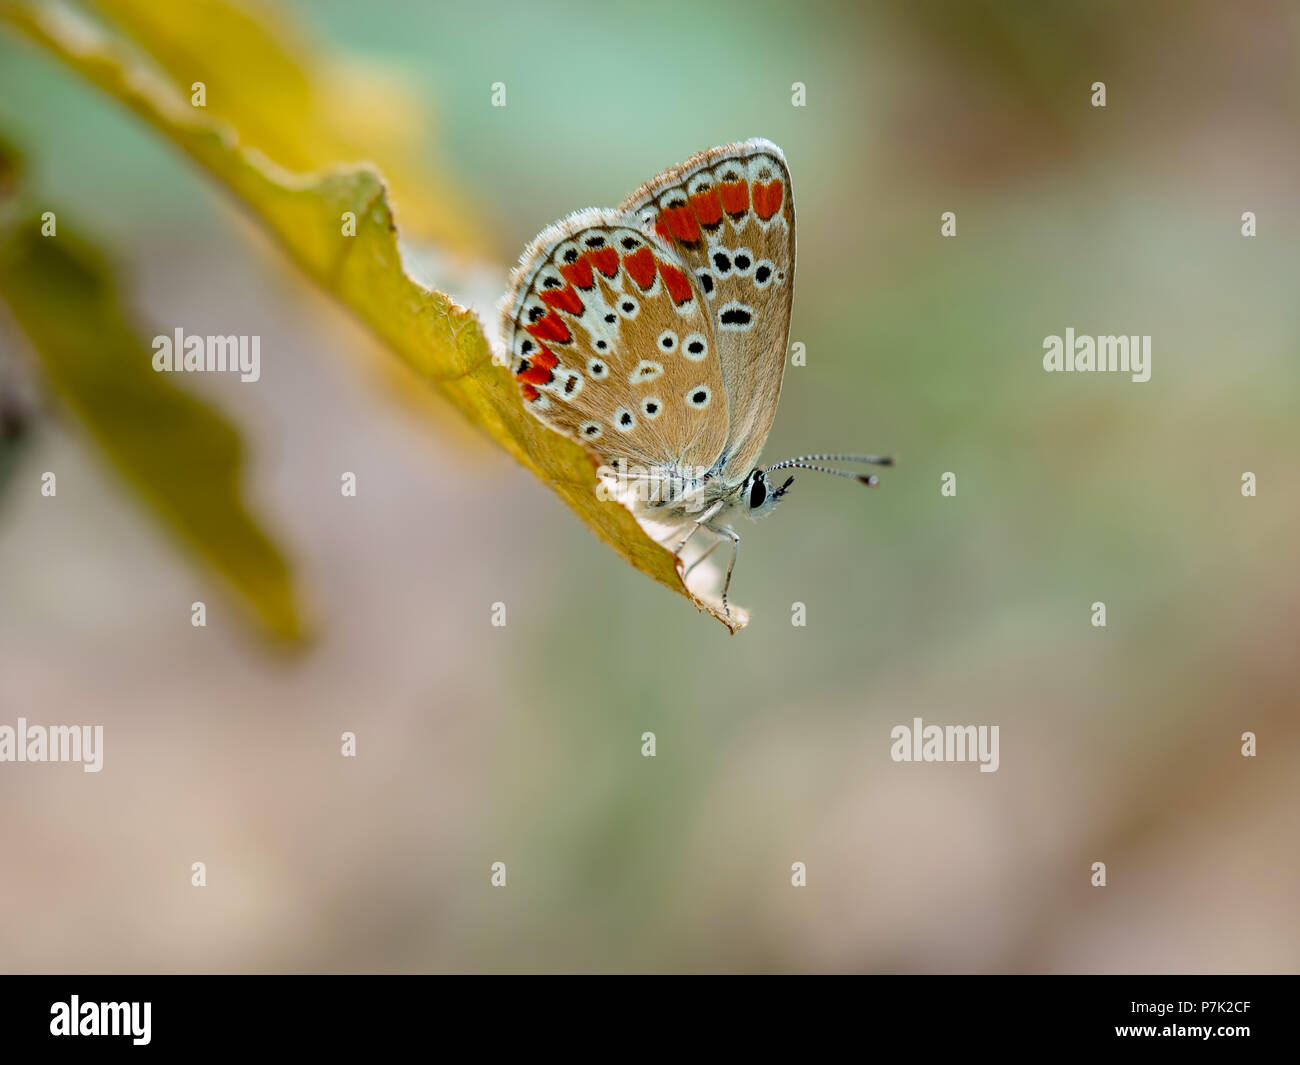 Brown Argus butteffly, Aricia agestis. - Stock Image